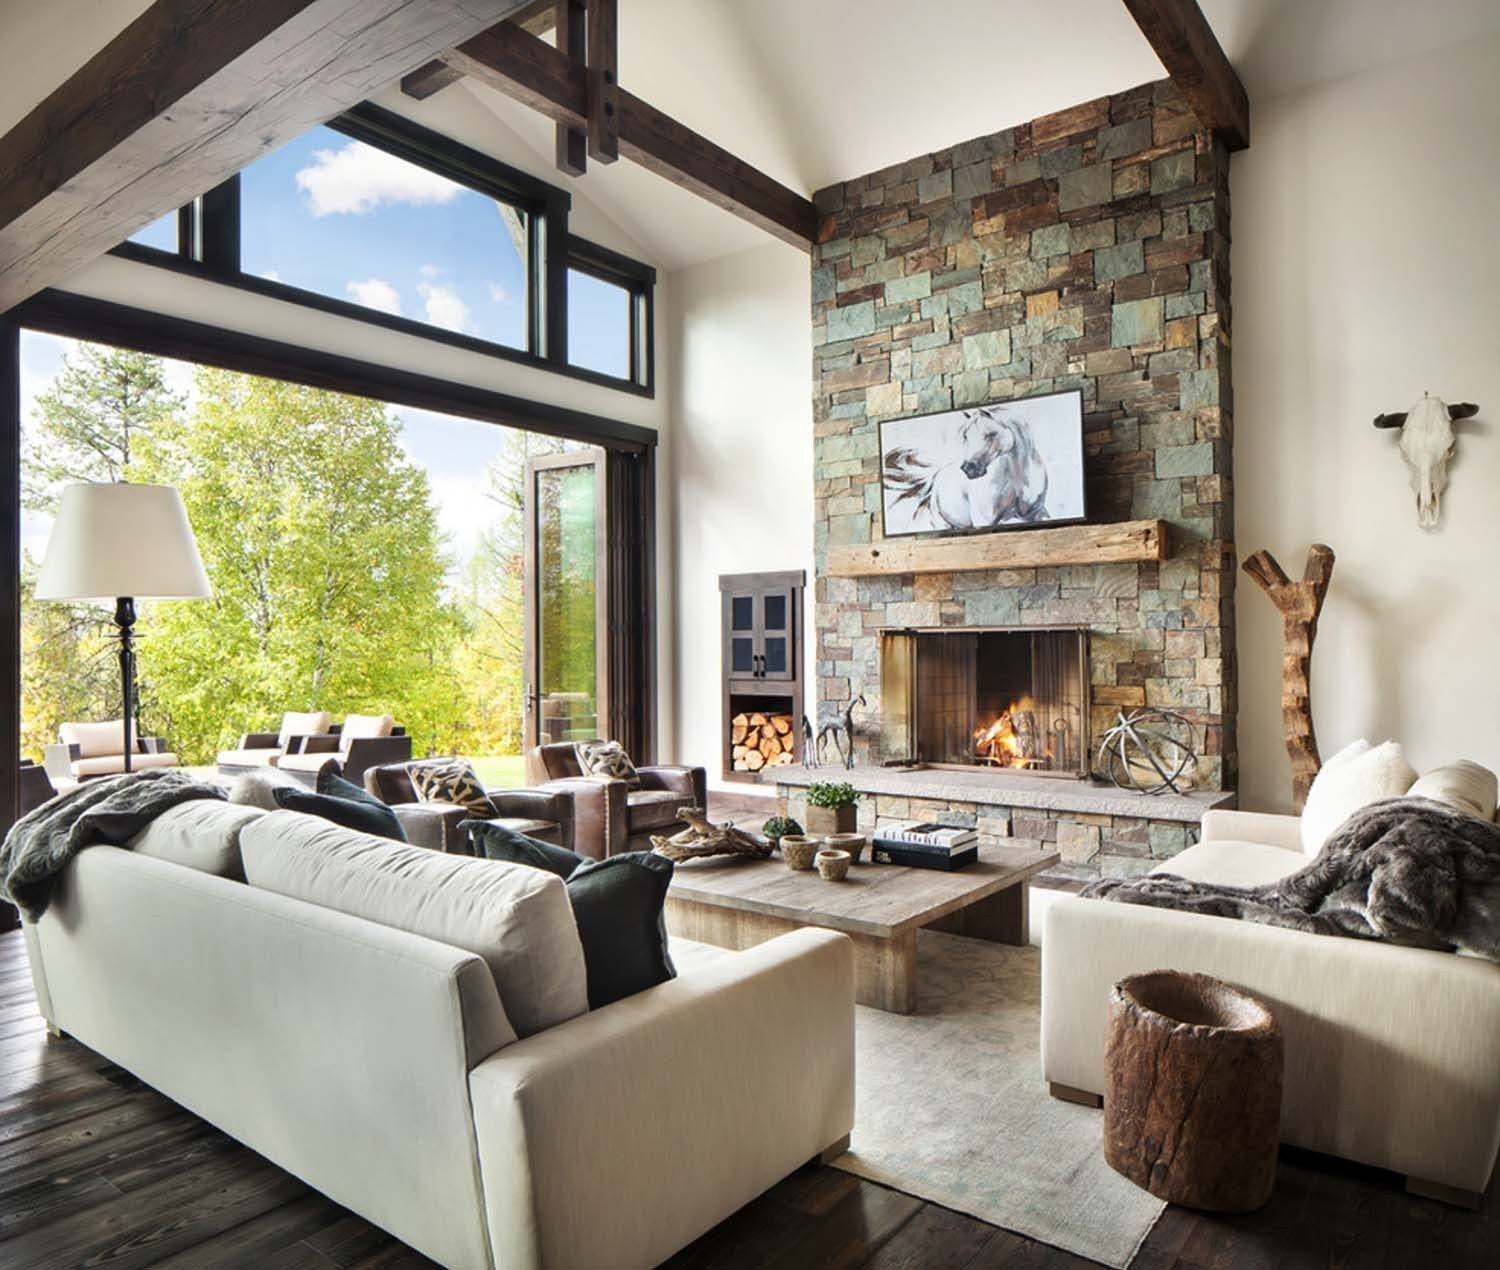 Living Room Murals Decorations 64 Modern Rustic Decor Thearmchairs Living Room Decorating Ideas 14x20m Rustic Living Room Design Rustic Living Room Ranch House